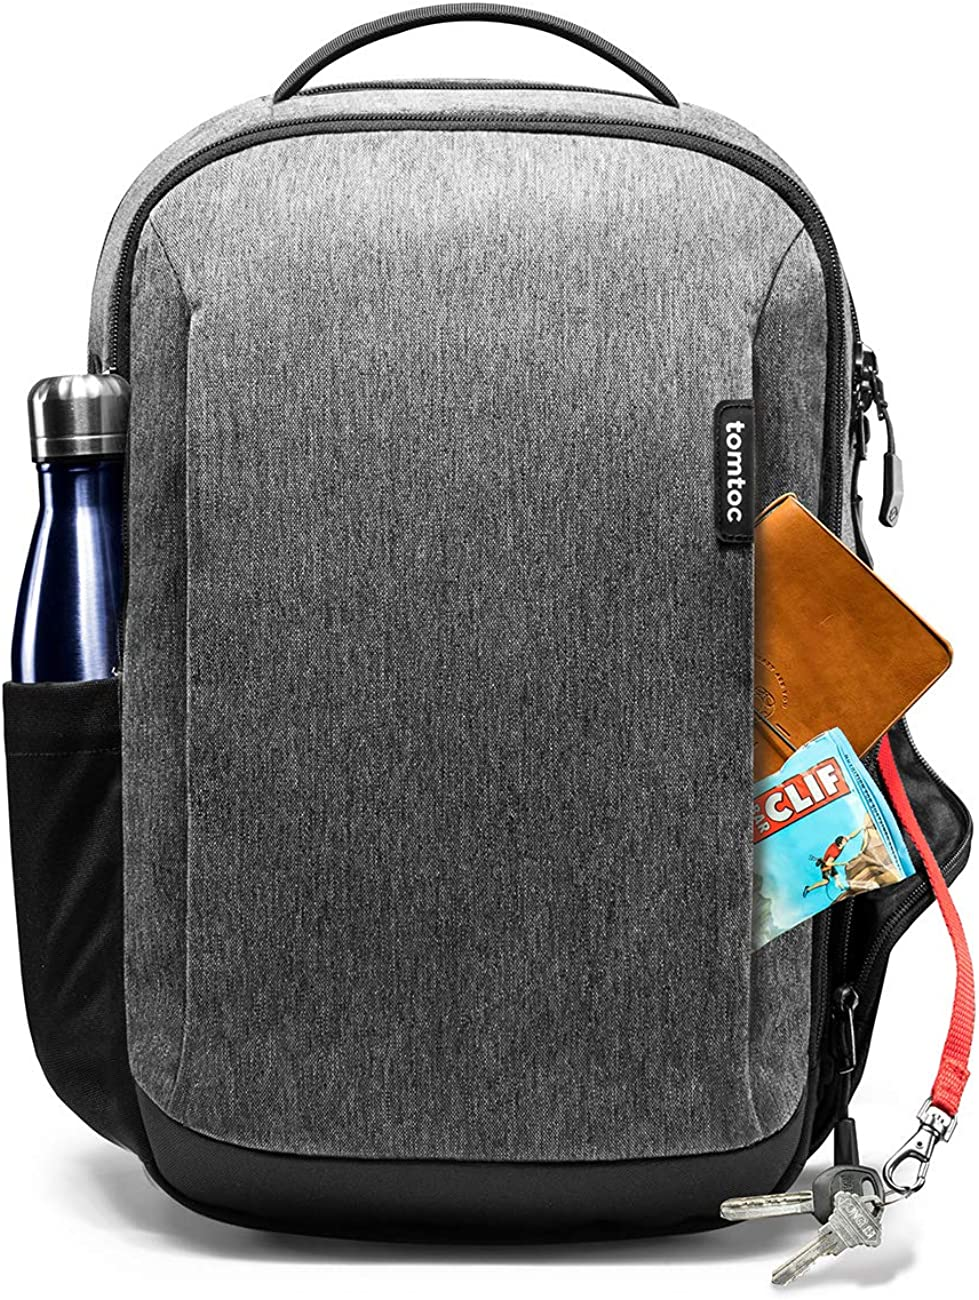 Travel Laptop Backpack, tomtoc Waterproof College School Bookbag Computer Bag for 15.6 inch Laptop, Business Backpack Daypack Rucksack with Many Pockets